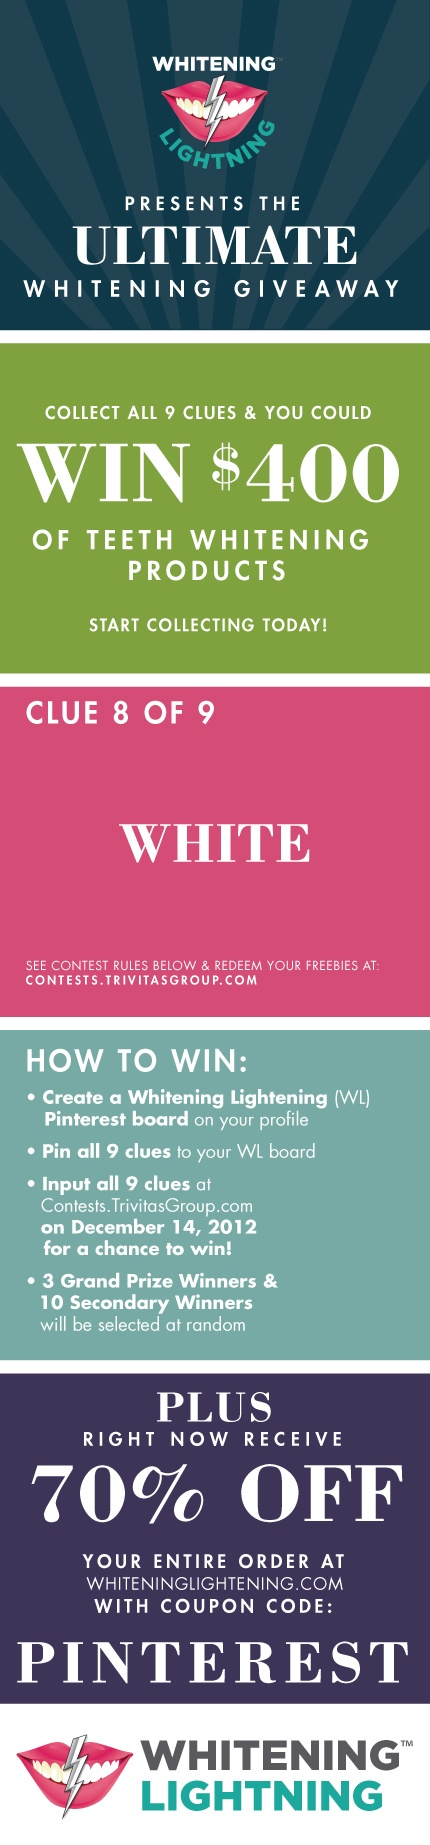 #WIN $400 Worth of #TeethWhitening products! Clue 8 of 9 - Follow Whitening Lightning and collect all 9 clues to win. Go to Contests.TrivitasGroup.com for details and contest rules! GOOD LUCK!